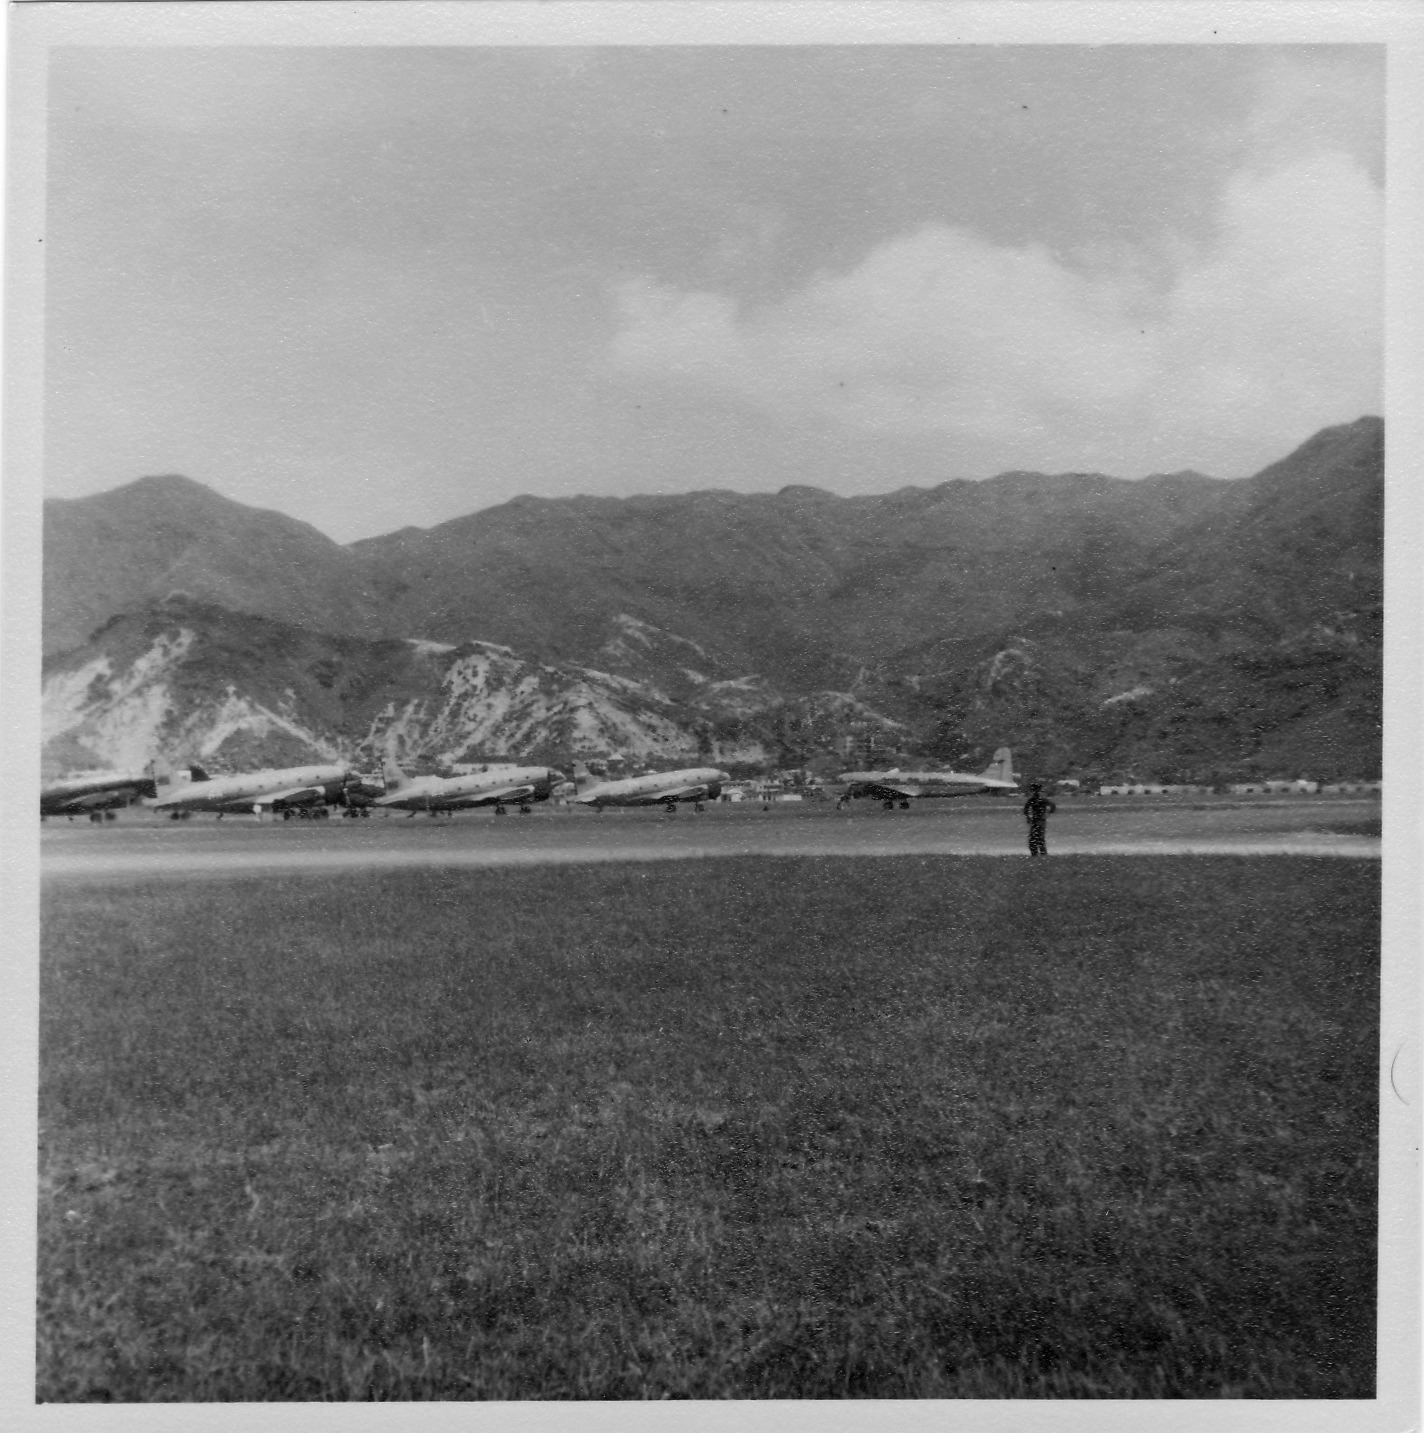 Disputed planes grounded at Kai Tak, 1950